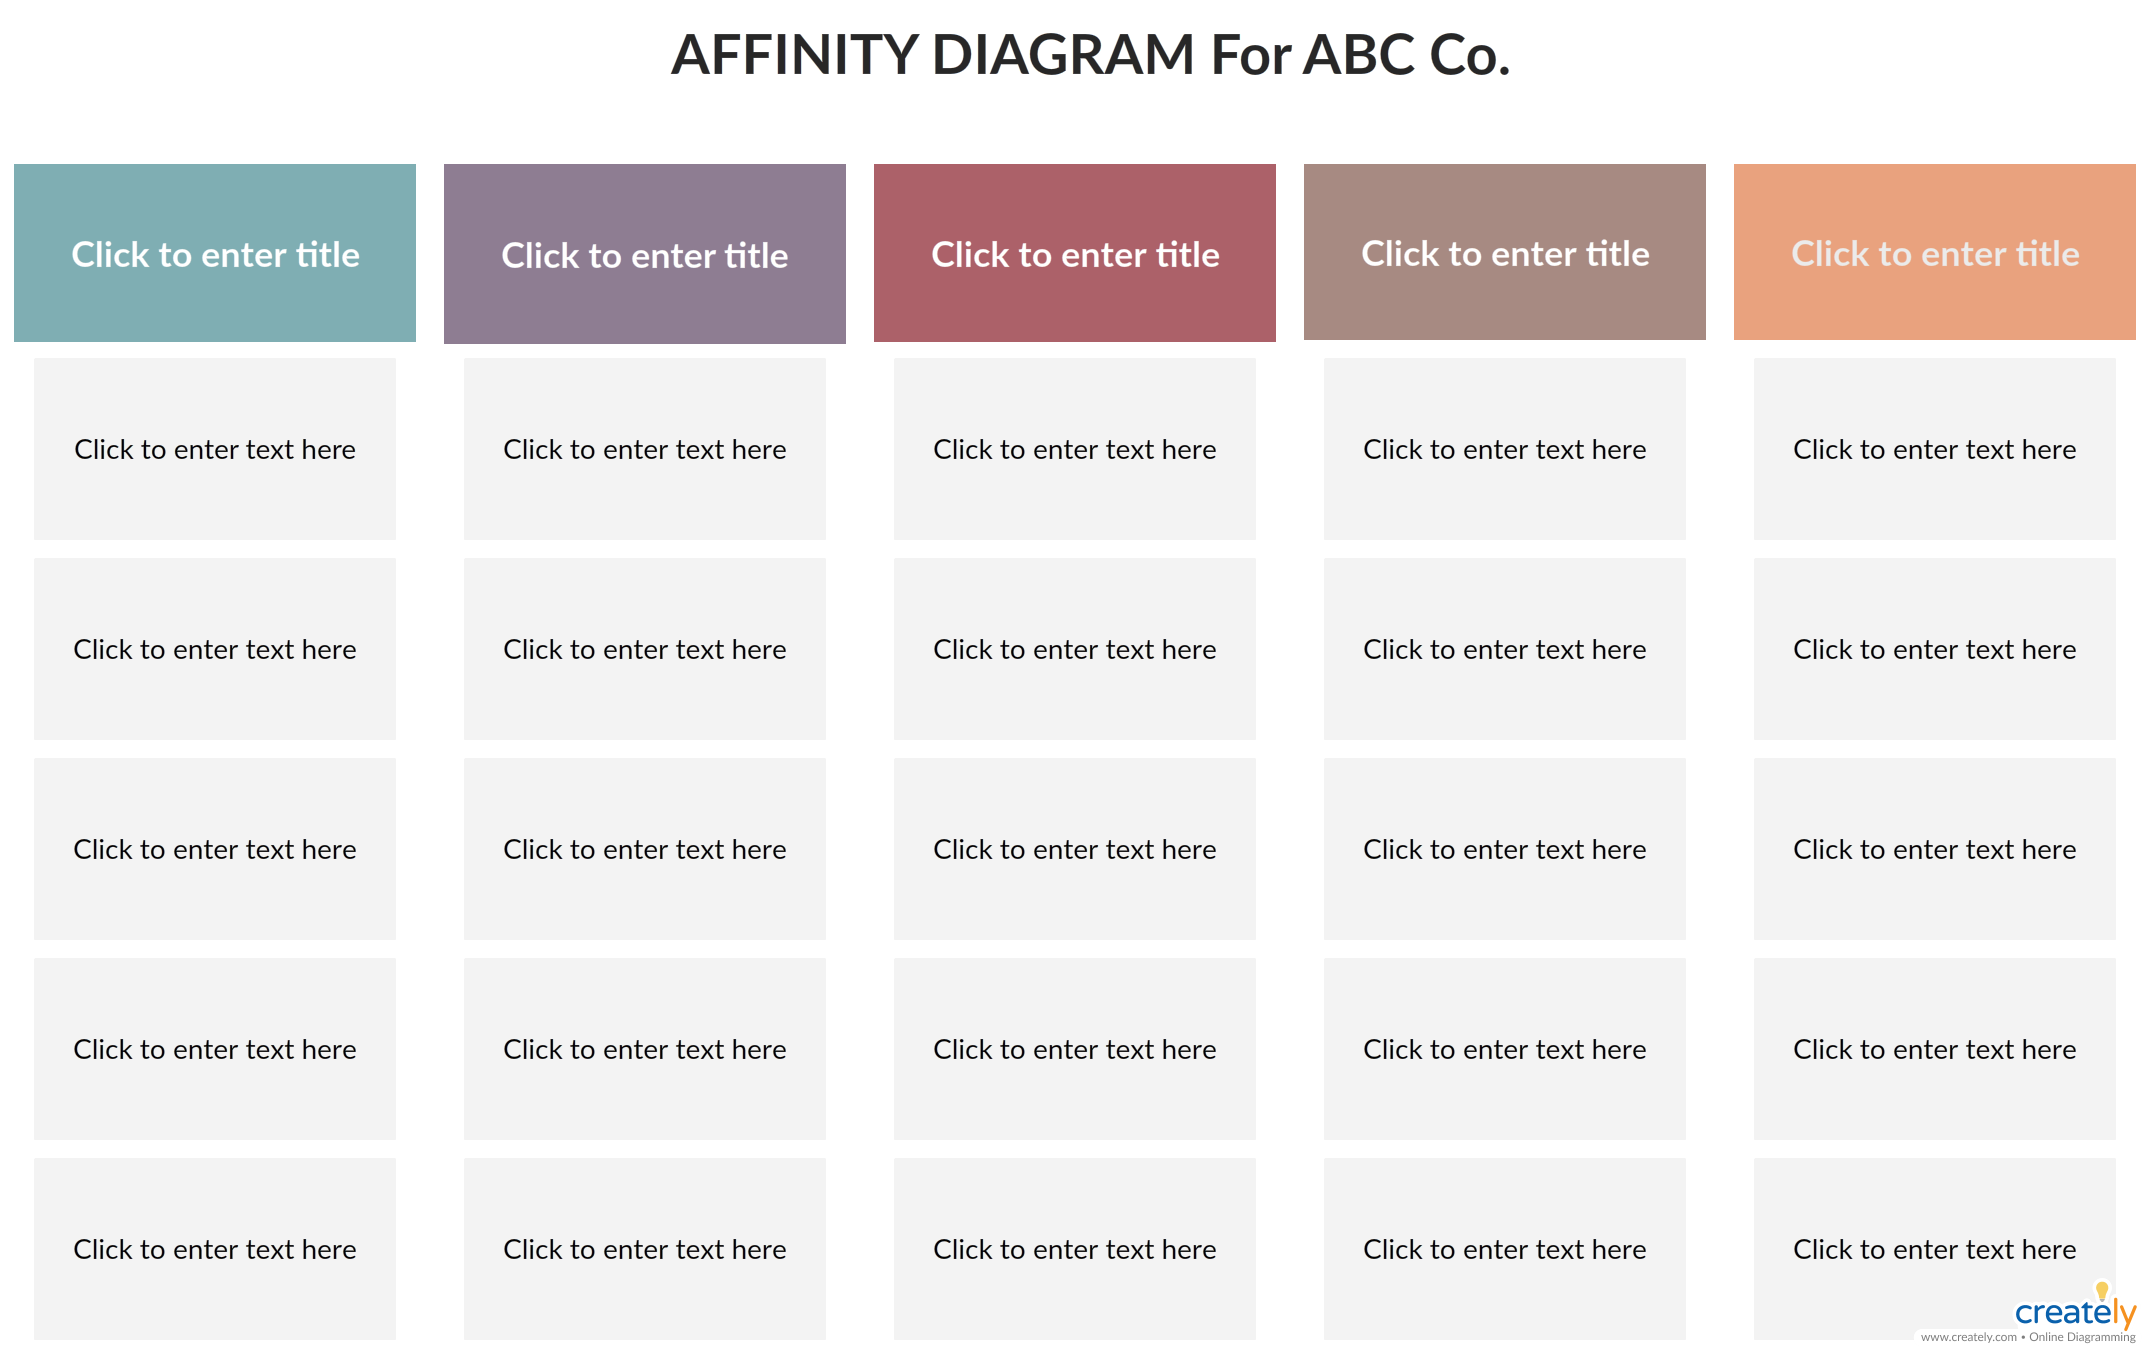 Affinity Diagram affinity diagram template to group similar ideas and find